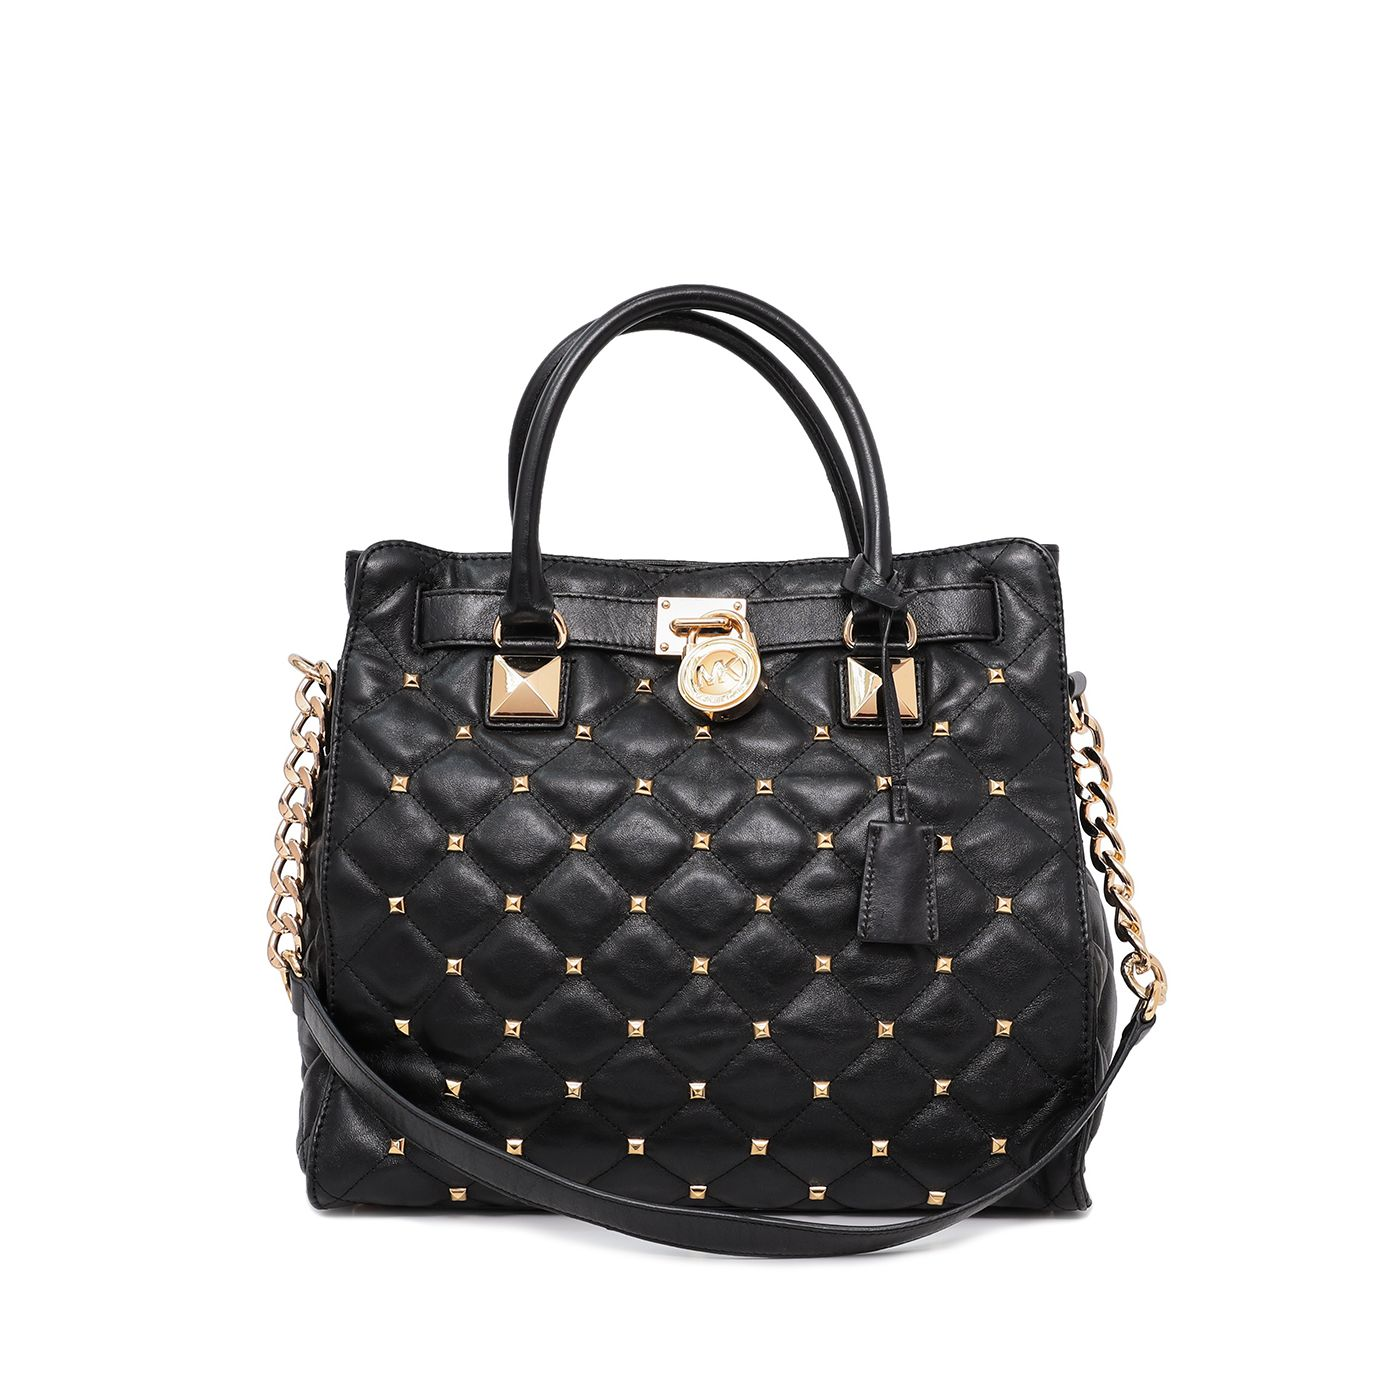 Michael Kors Black Studded Hamilton Bag